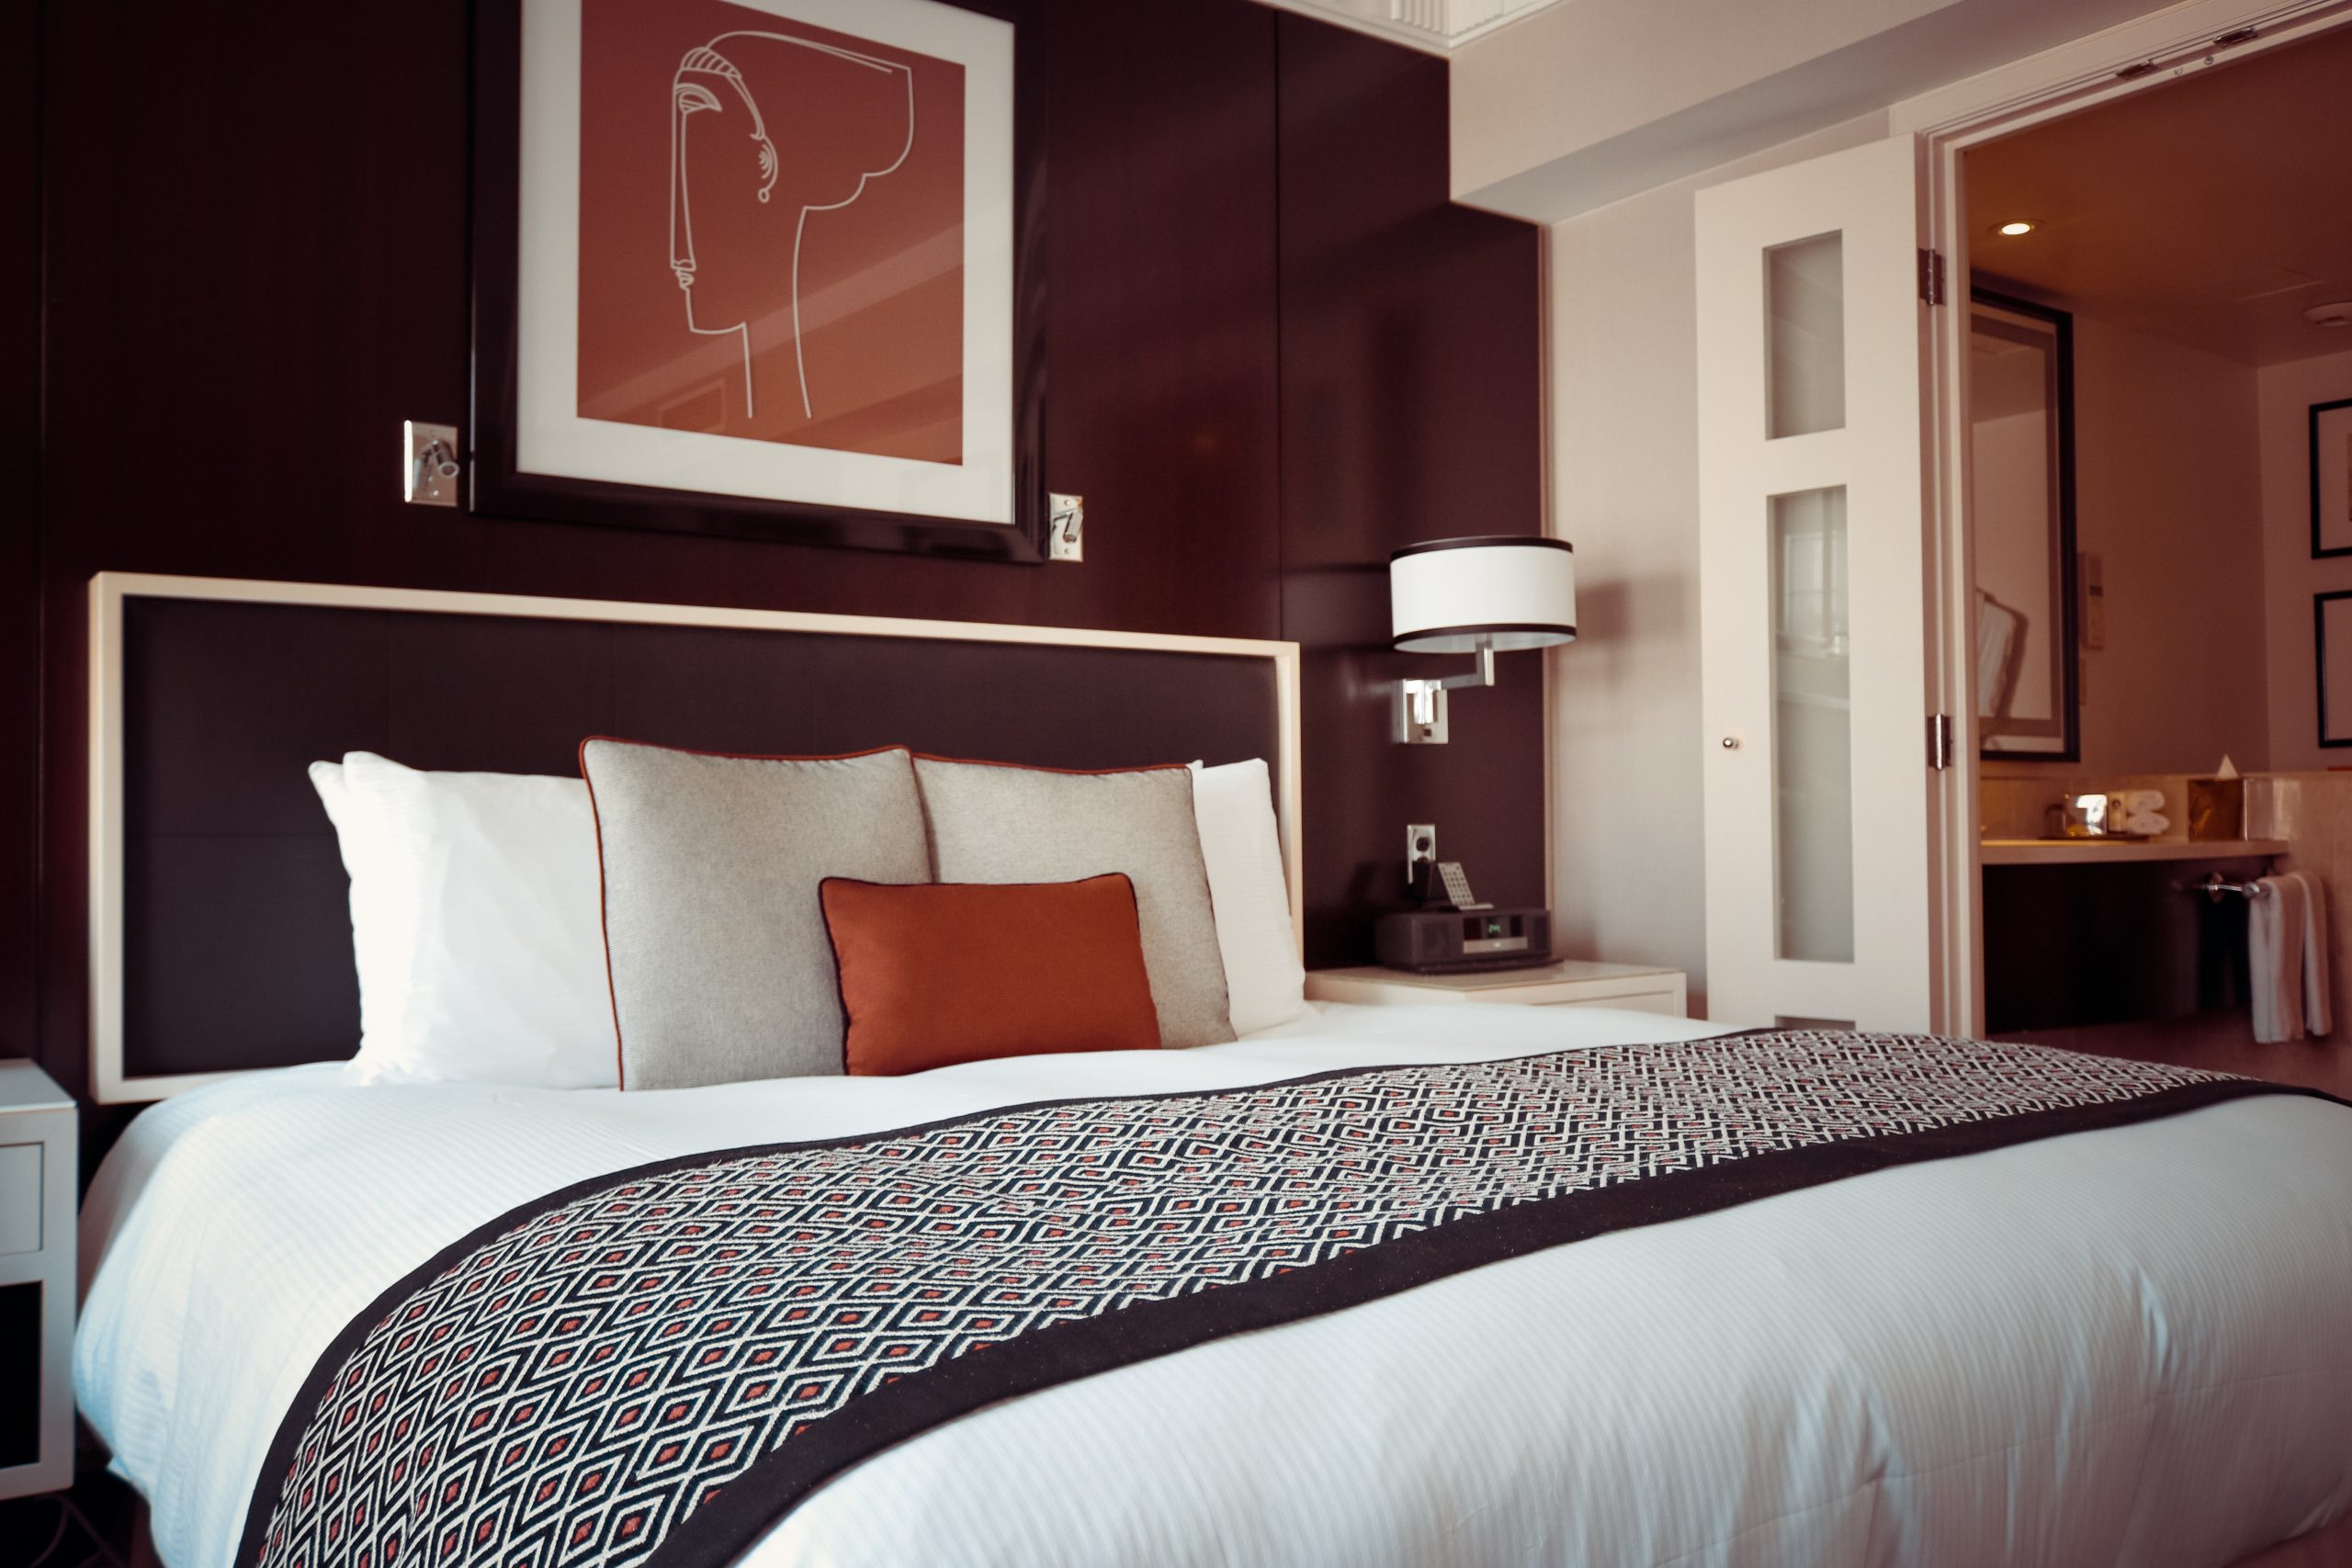 black-and-grey-bedspread-on-bed-and-pillow-164595